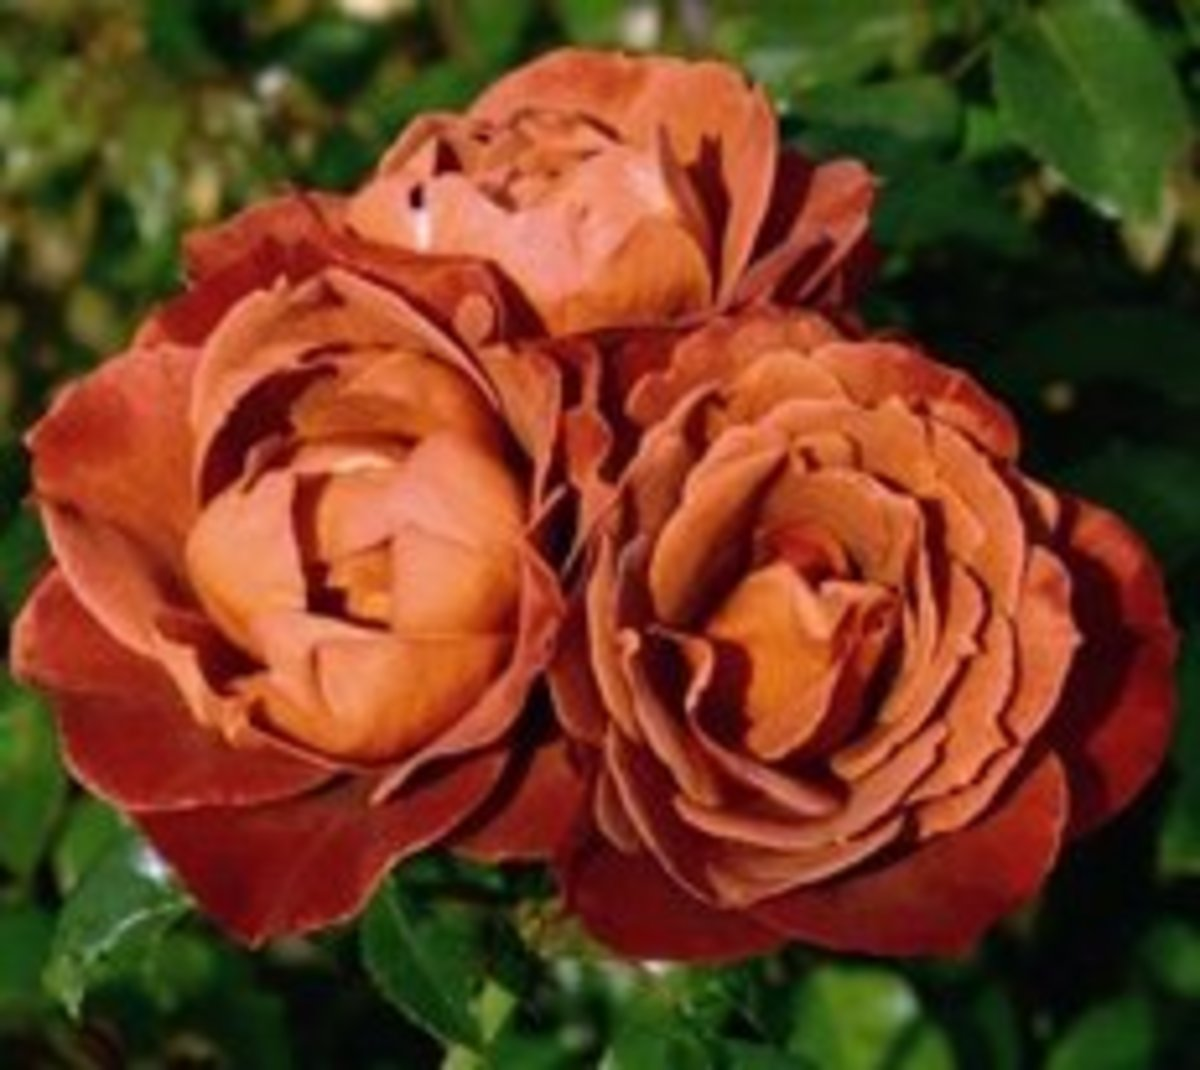 Brown Roses - Friendship Meaning